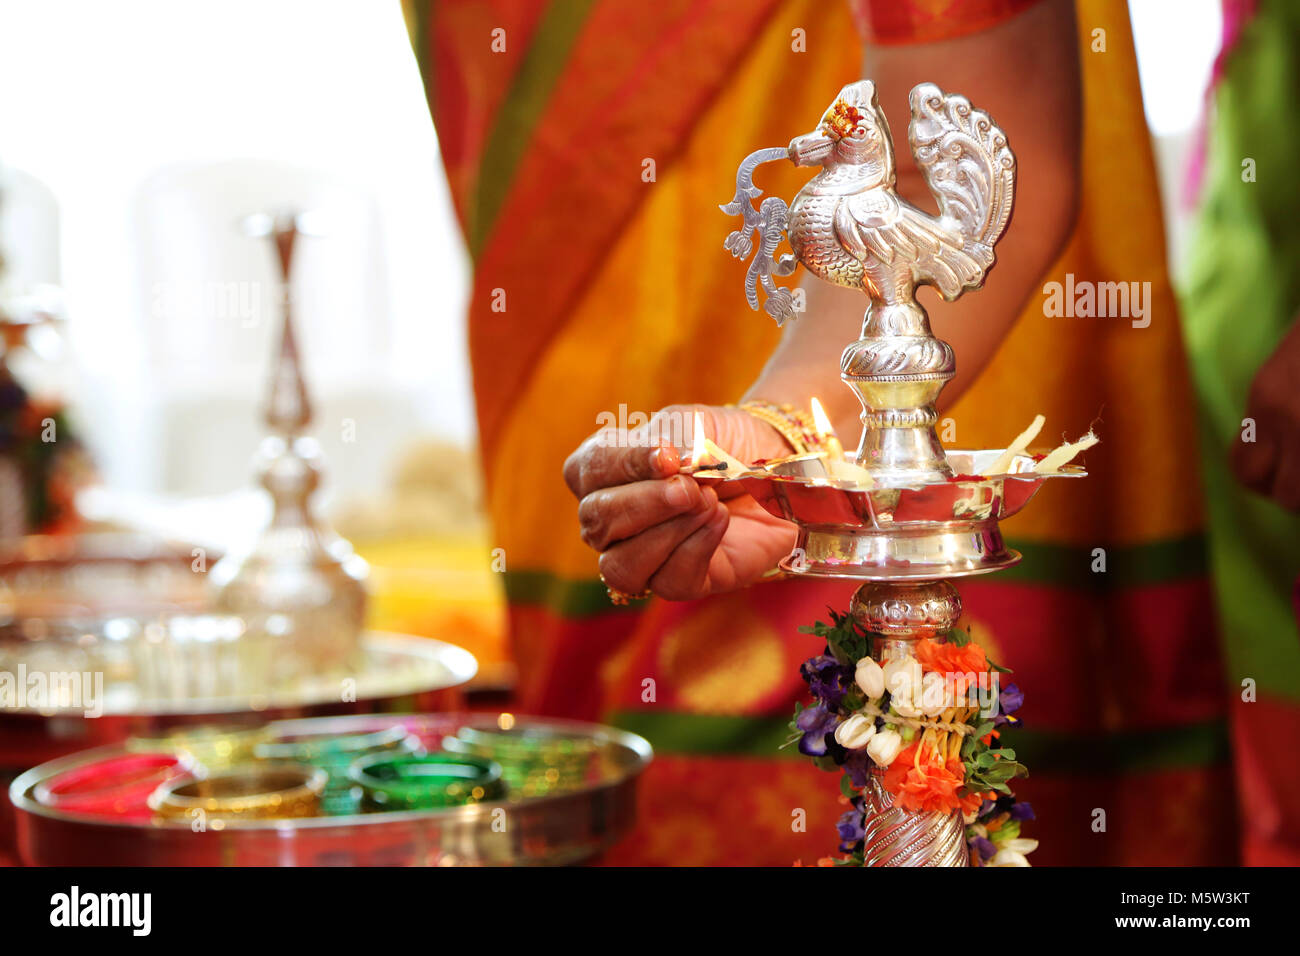 Closeup shot on Hindu wedding rituals Traditional south Indian brass oil lamp also Red Carpet - Stock Image